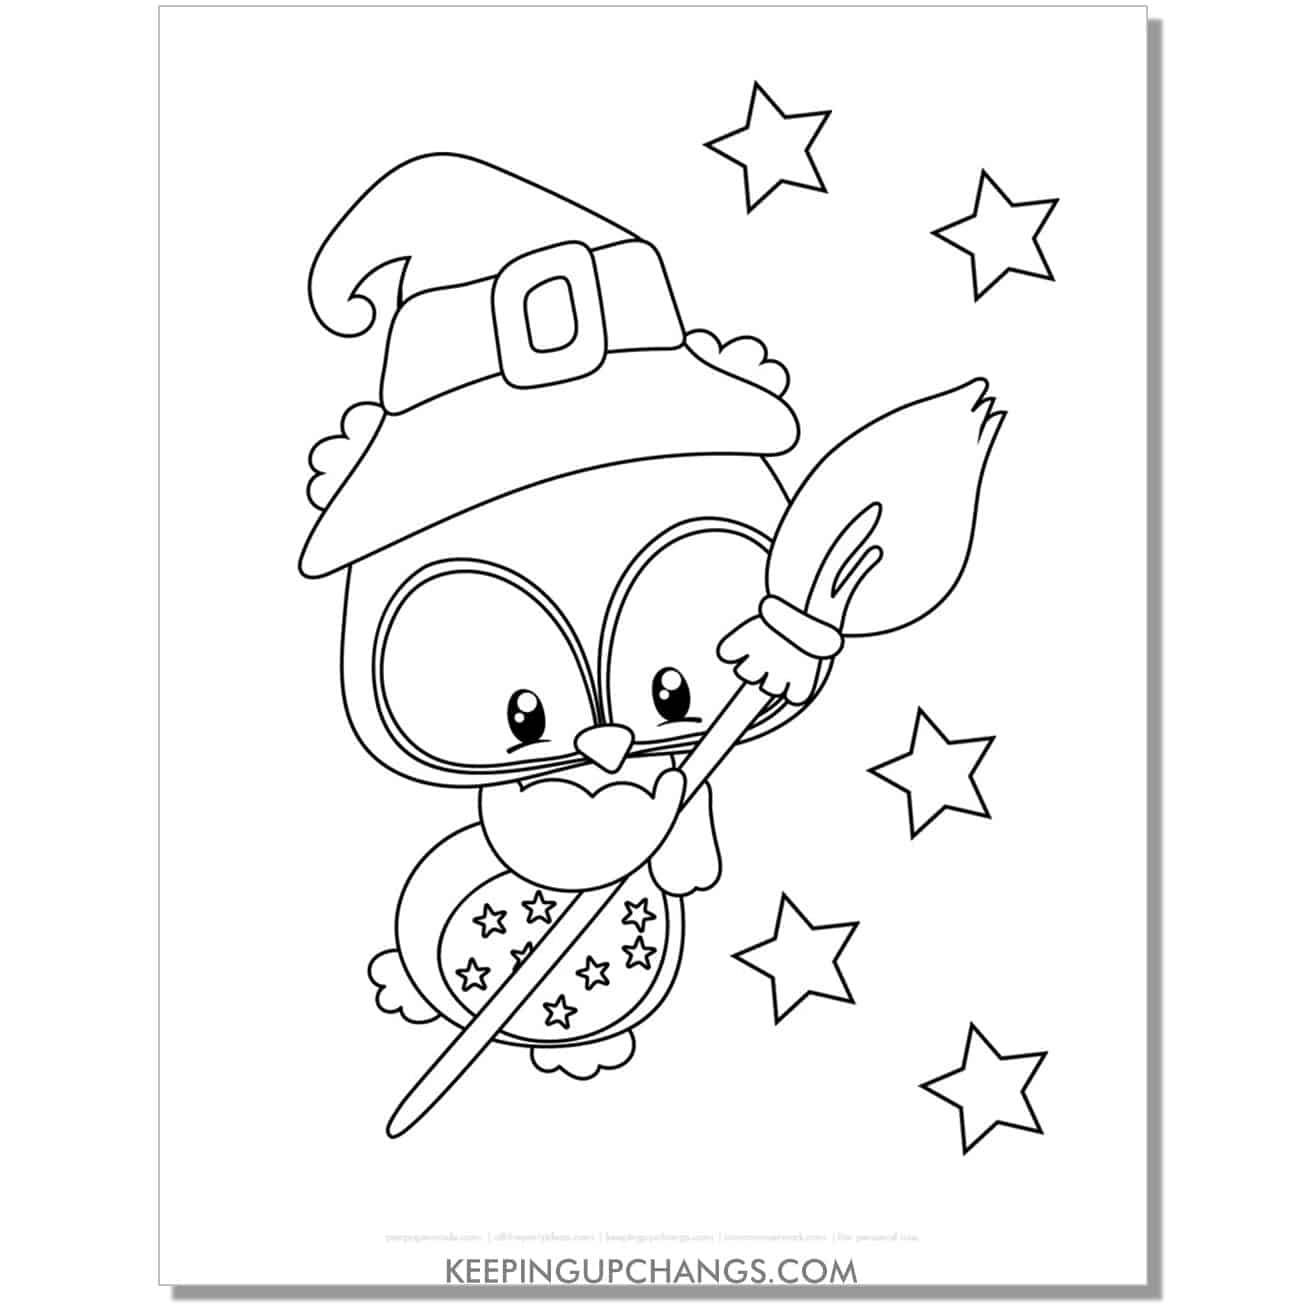 free owl witch coloring page with stars.